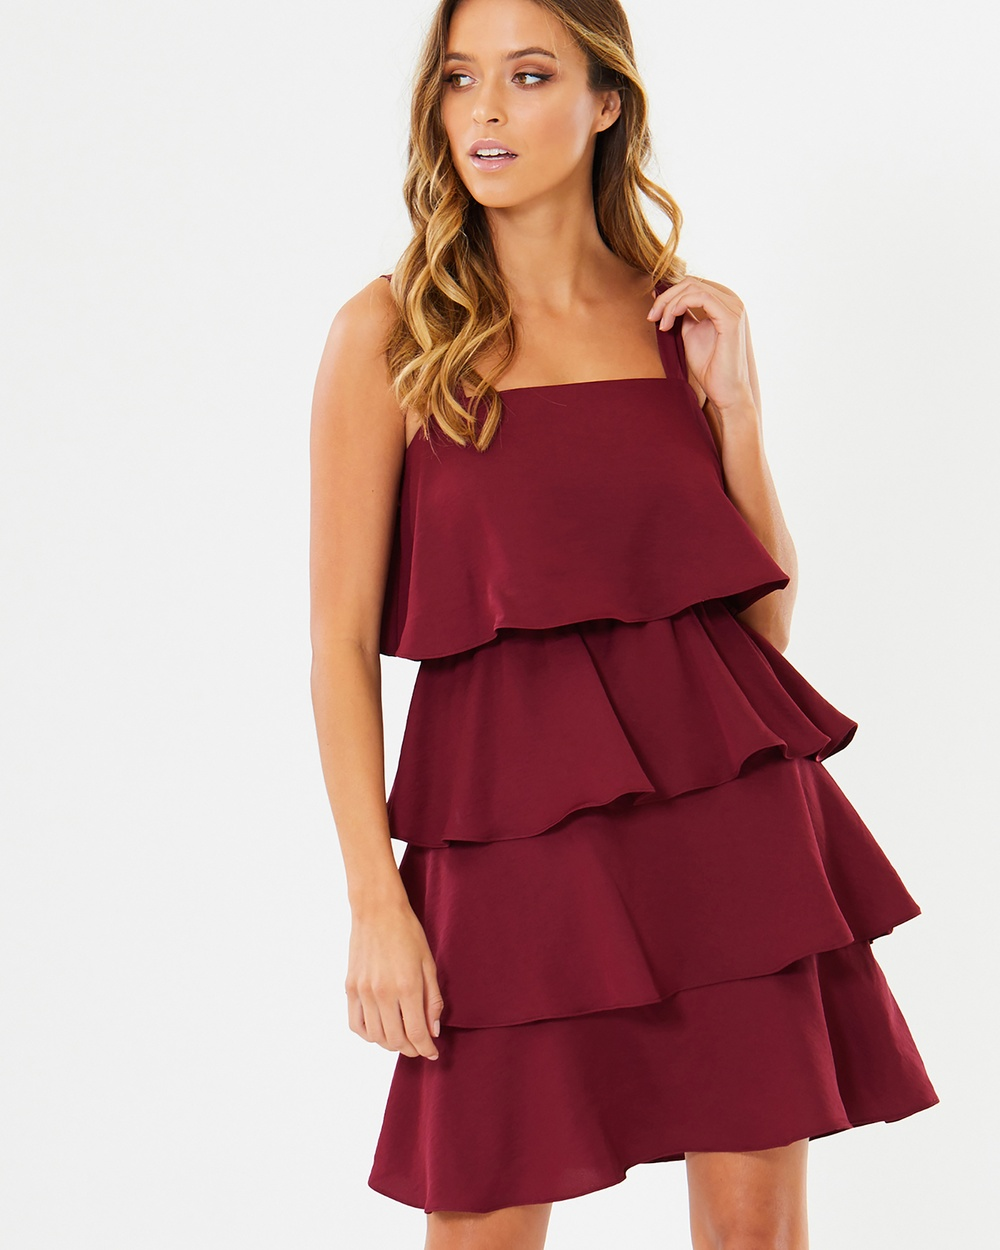 Calli Kenny Layered Dress Dresses Burgundy Kenny Layered Dress